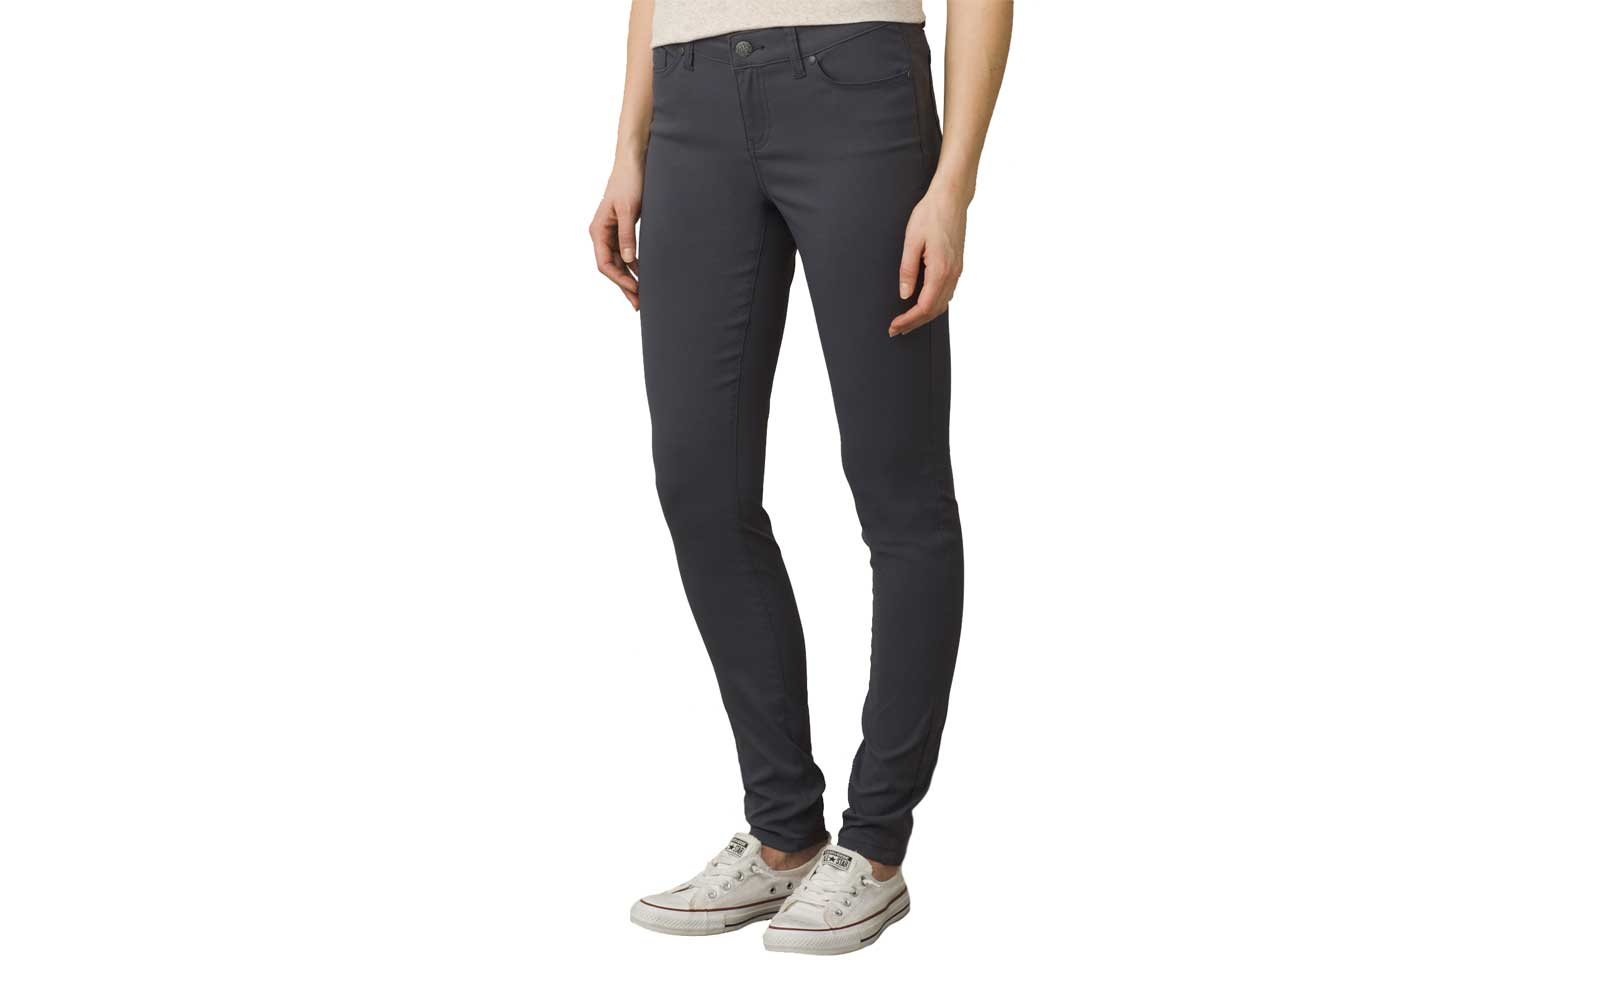 1a741c74affb The Best Travel Pants for Women Who Hate Flying in Jeans | Travel + Leisure